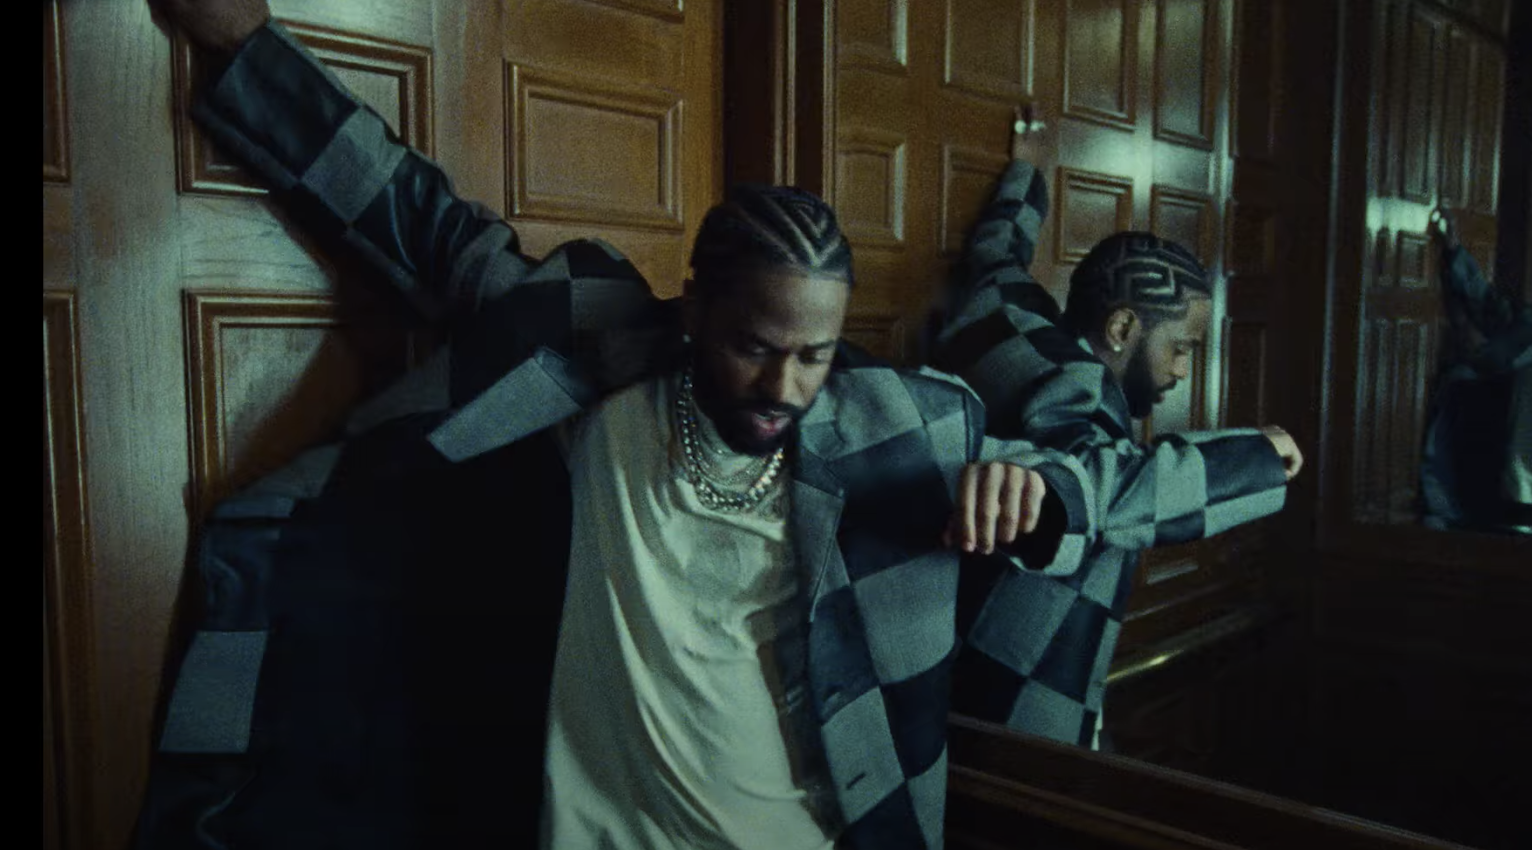 SPOTTED: Big Sean in Lithuania Music Video Featuring Travis Scott